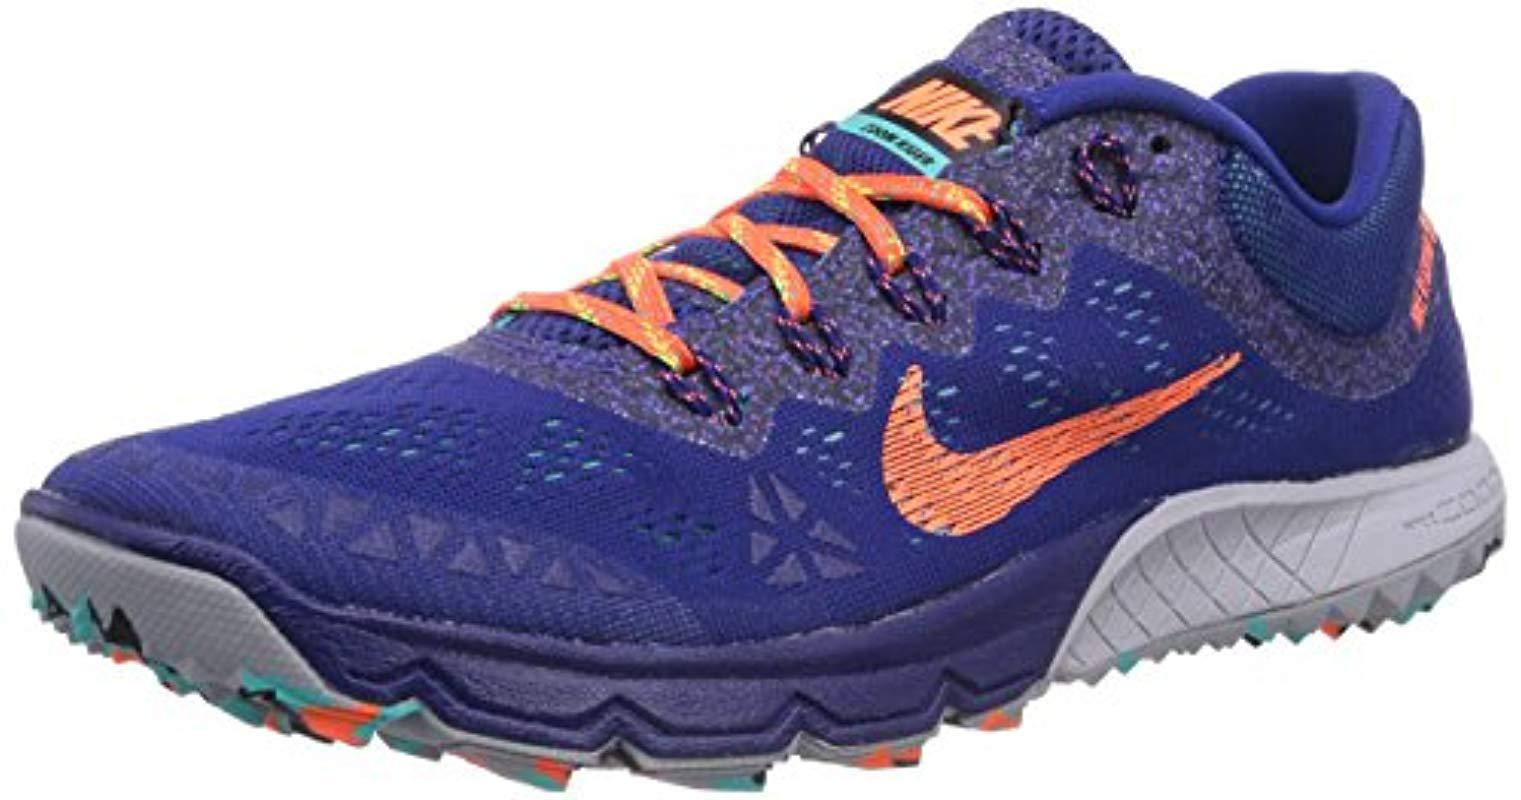 eea1305a4ba Nike Air Zoom Terra Kiger 2 Running Shoes in Blue - Lyst